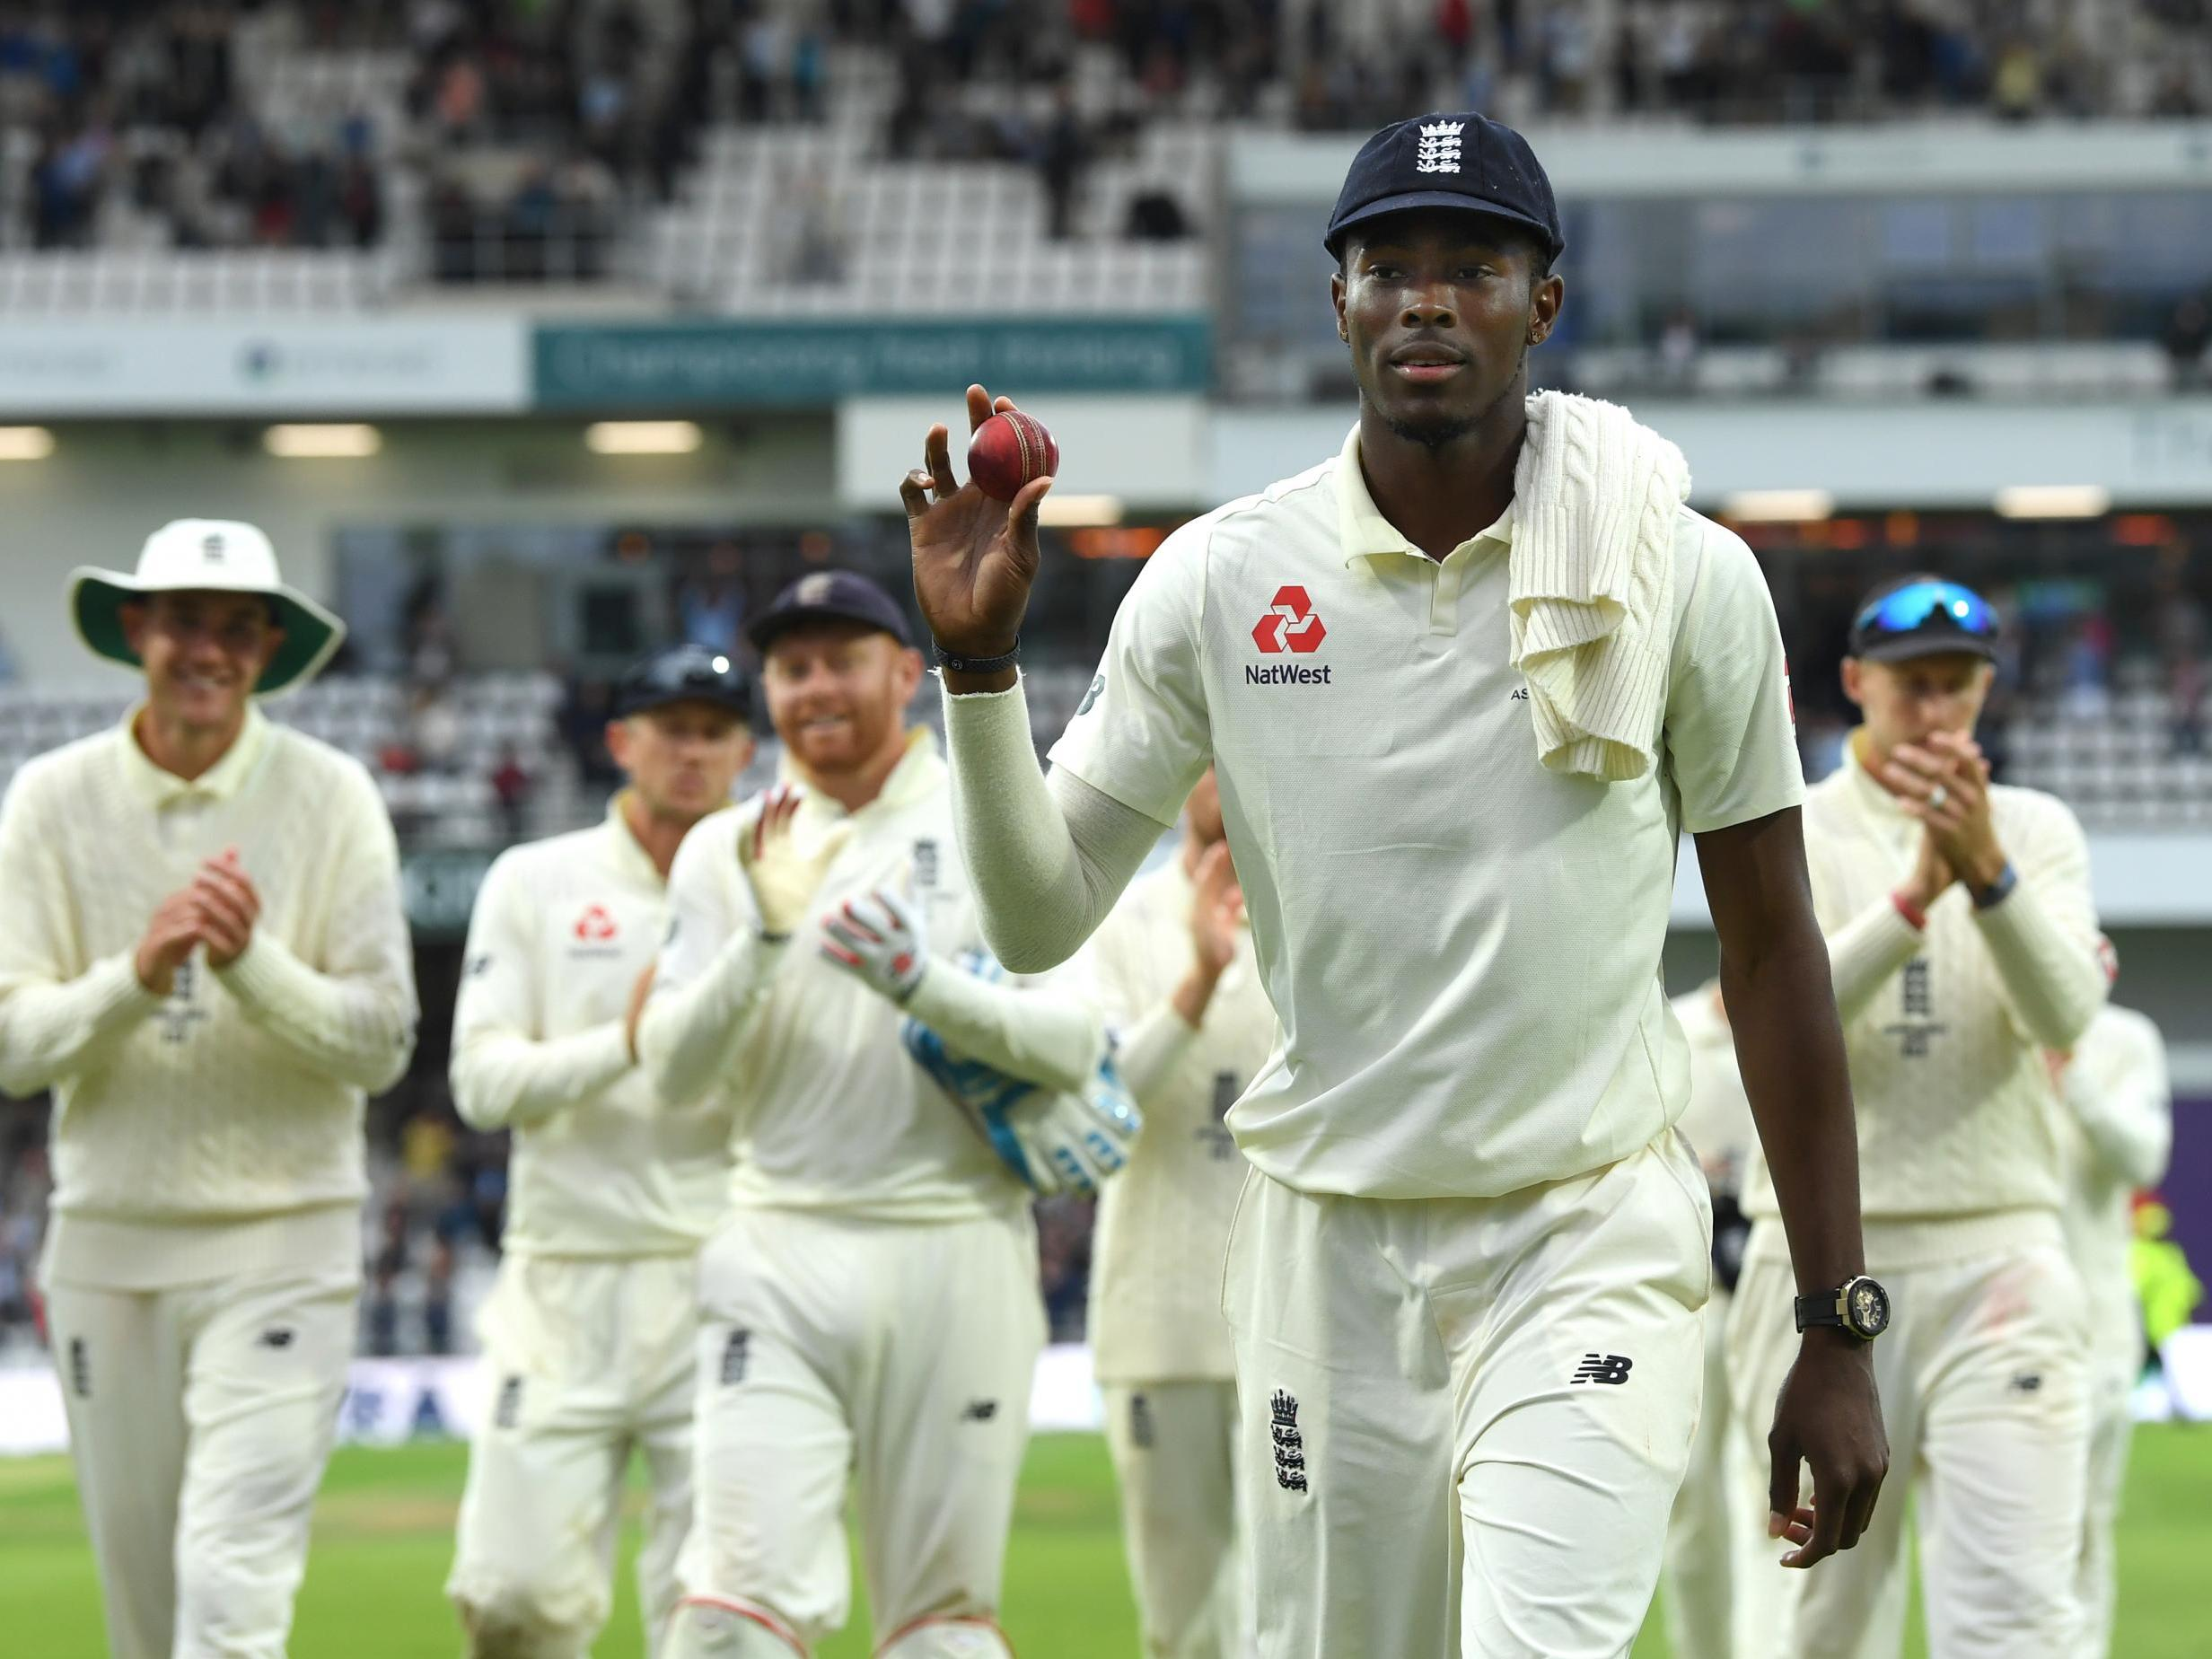 Jofra Archer awarded England Test and white ball central contracts after breakthrough summer